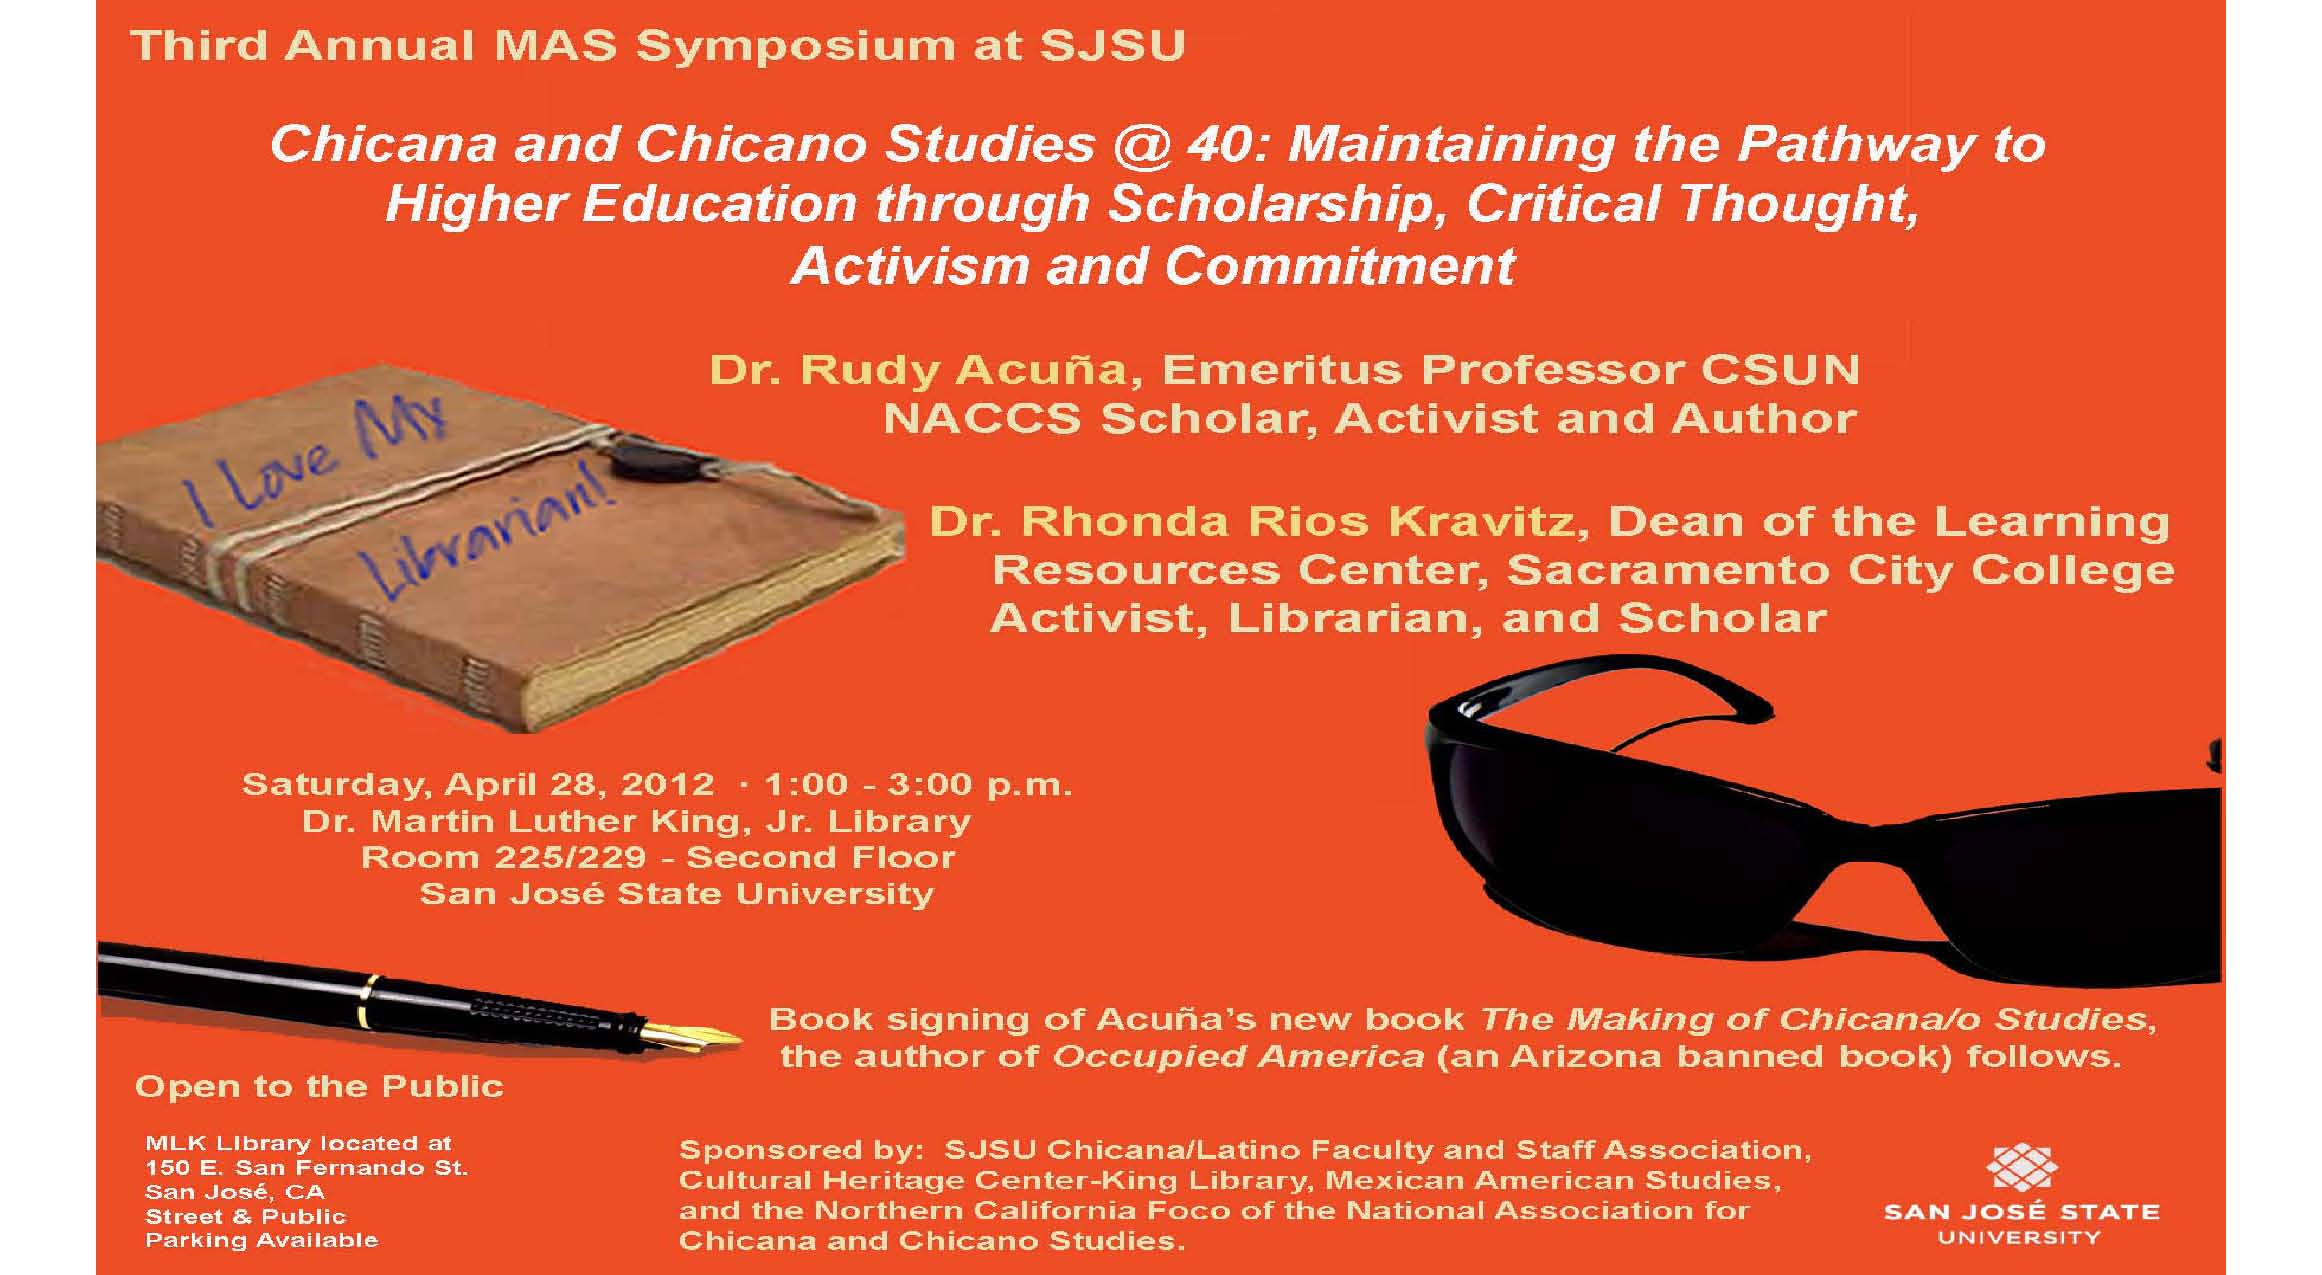 MAS Symposium flyer